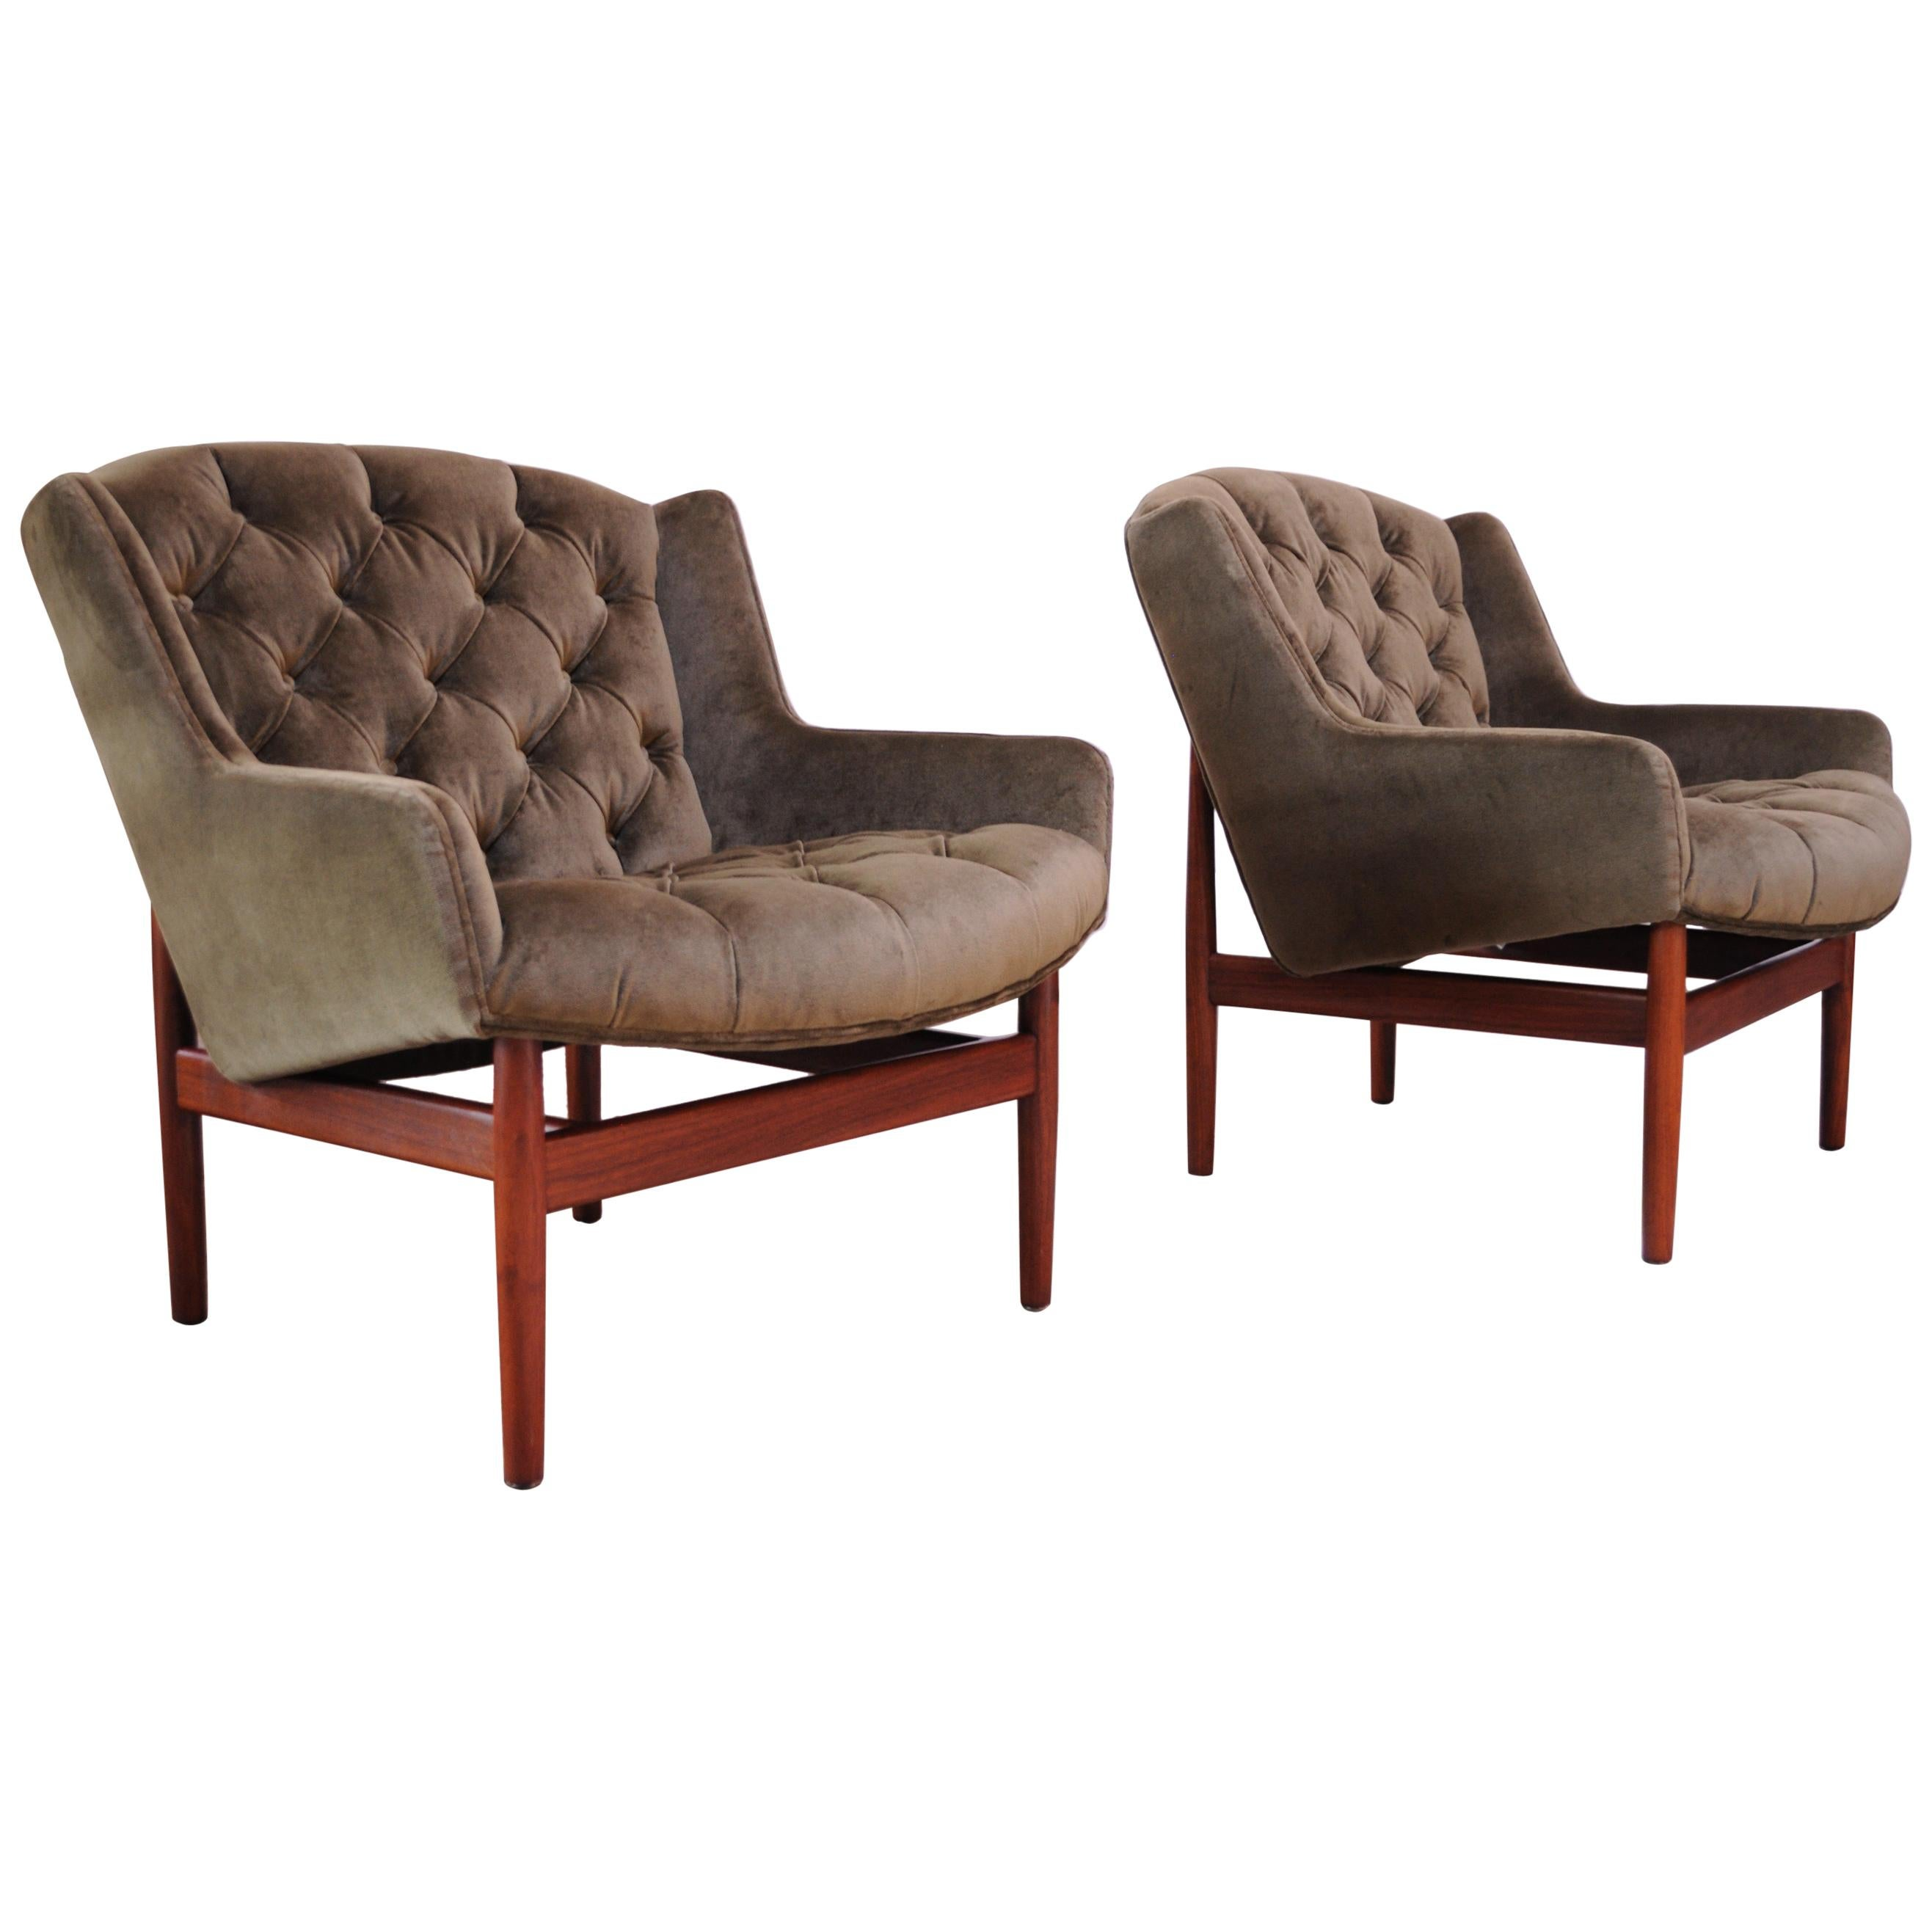 "Pair of Jens Risom Walnut ""Floating"" Lounge Chairs in Olive Velvet"